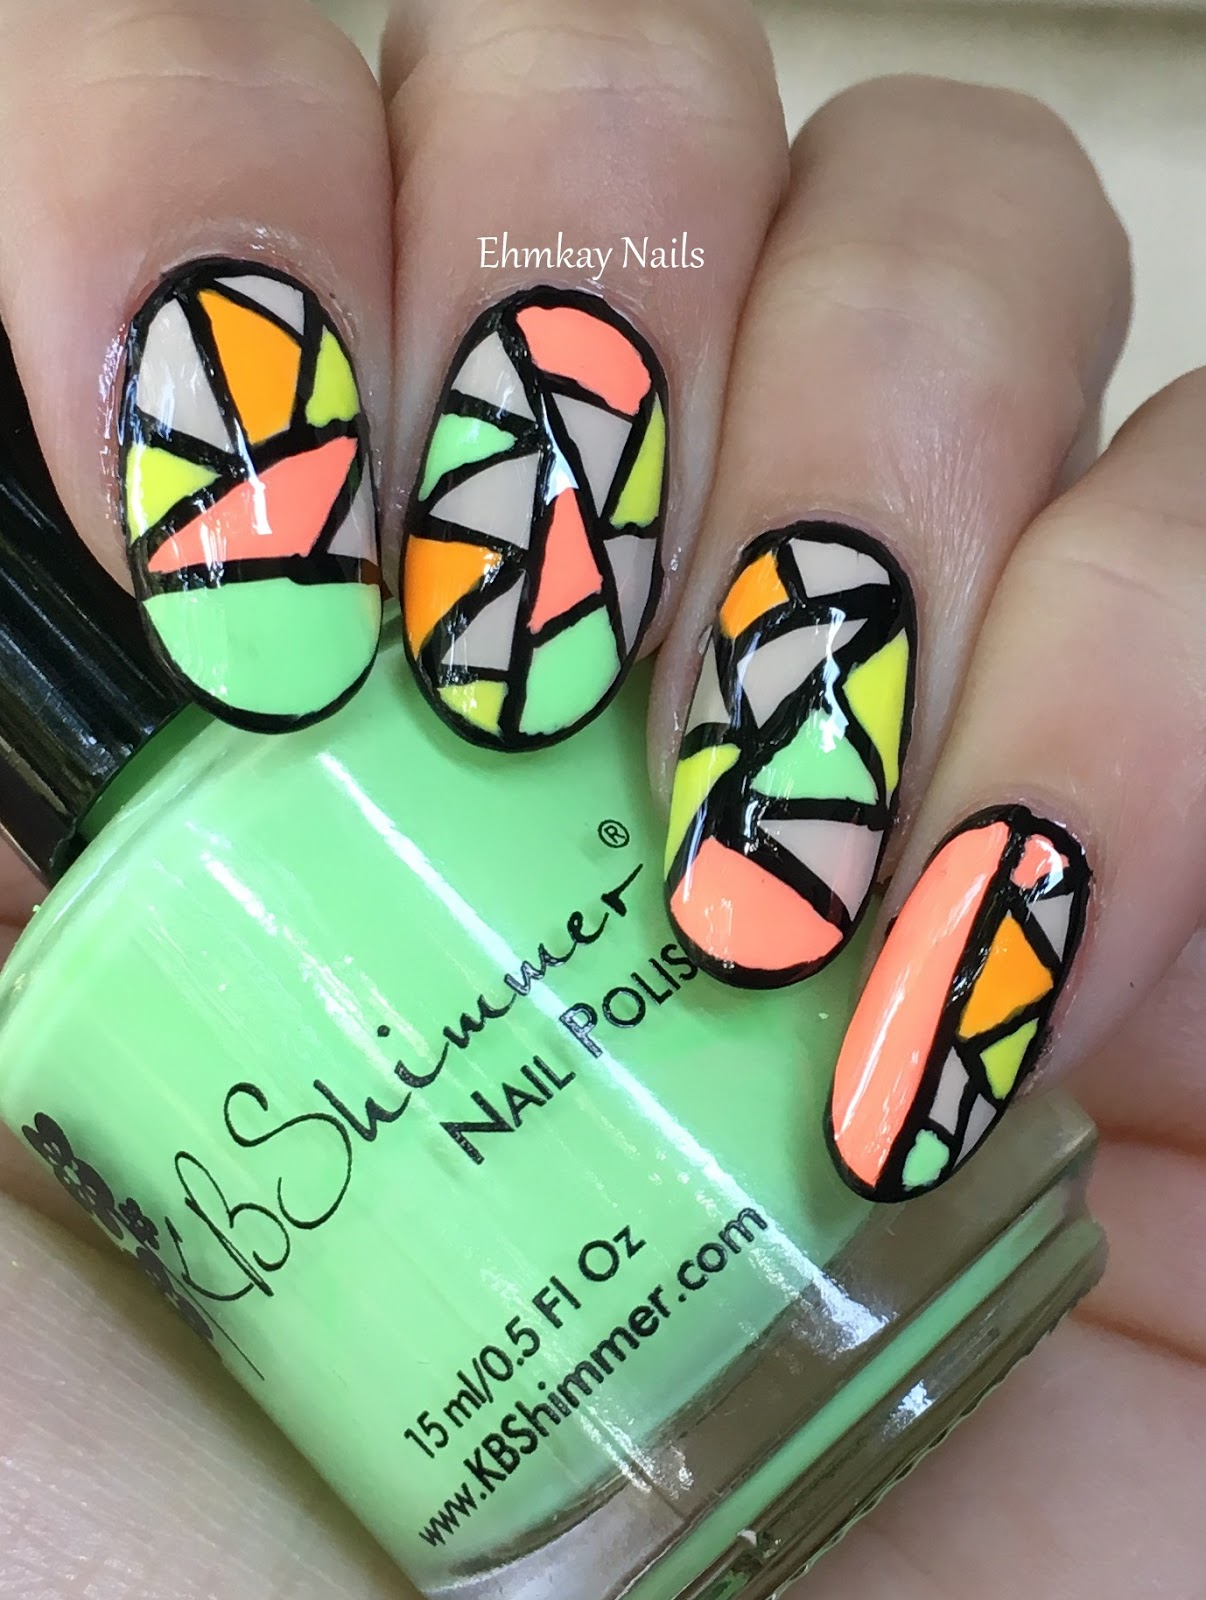 Ehmkay Nails Rainbow Neon Stripe Nail Art: Ehmkay Nails: Neon Stained Glass Nail Art Featuring KB Shimmer